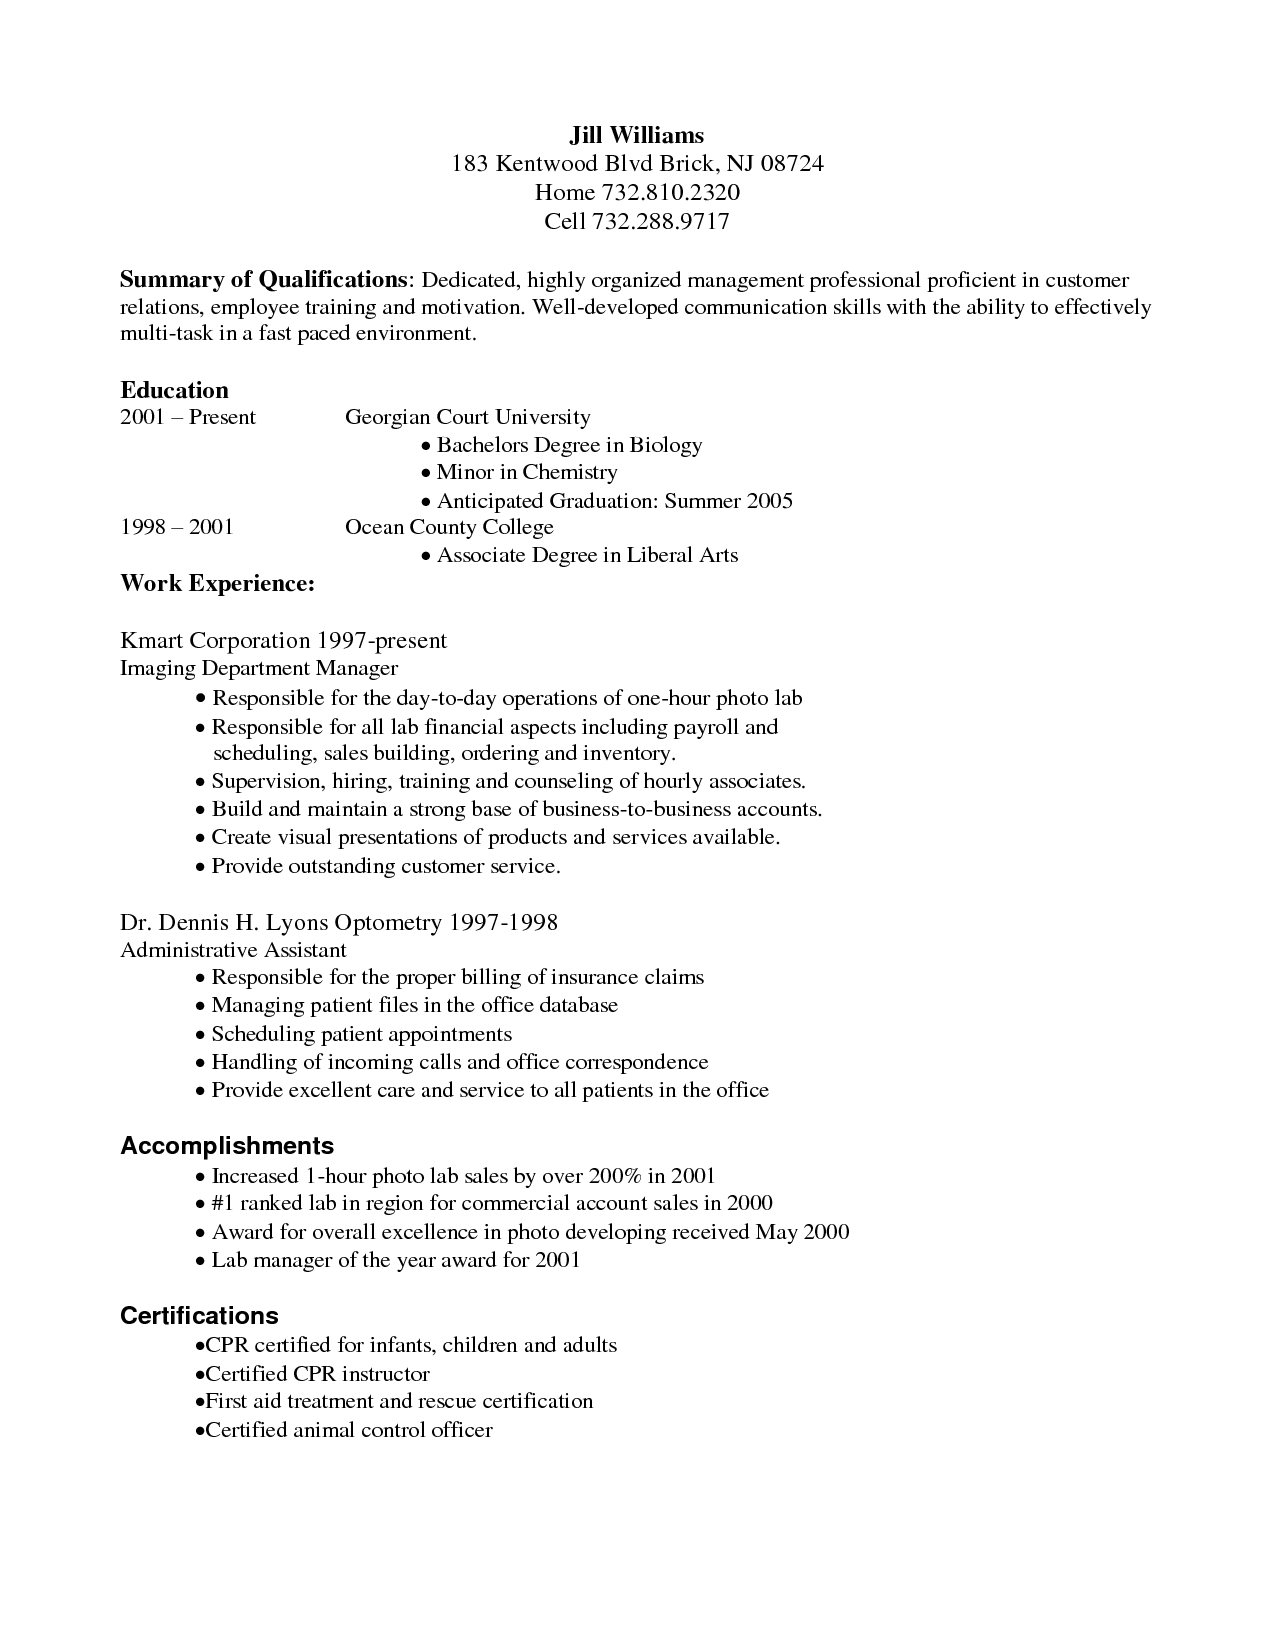 Medical Billing Resume Samples summary of qualifications